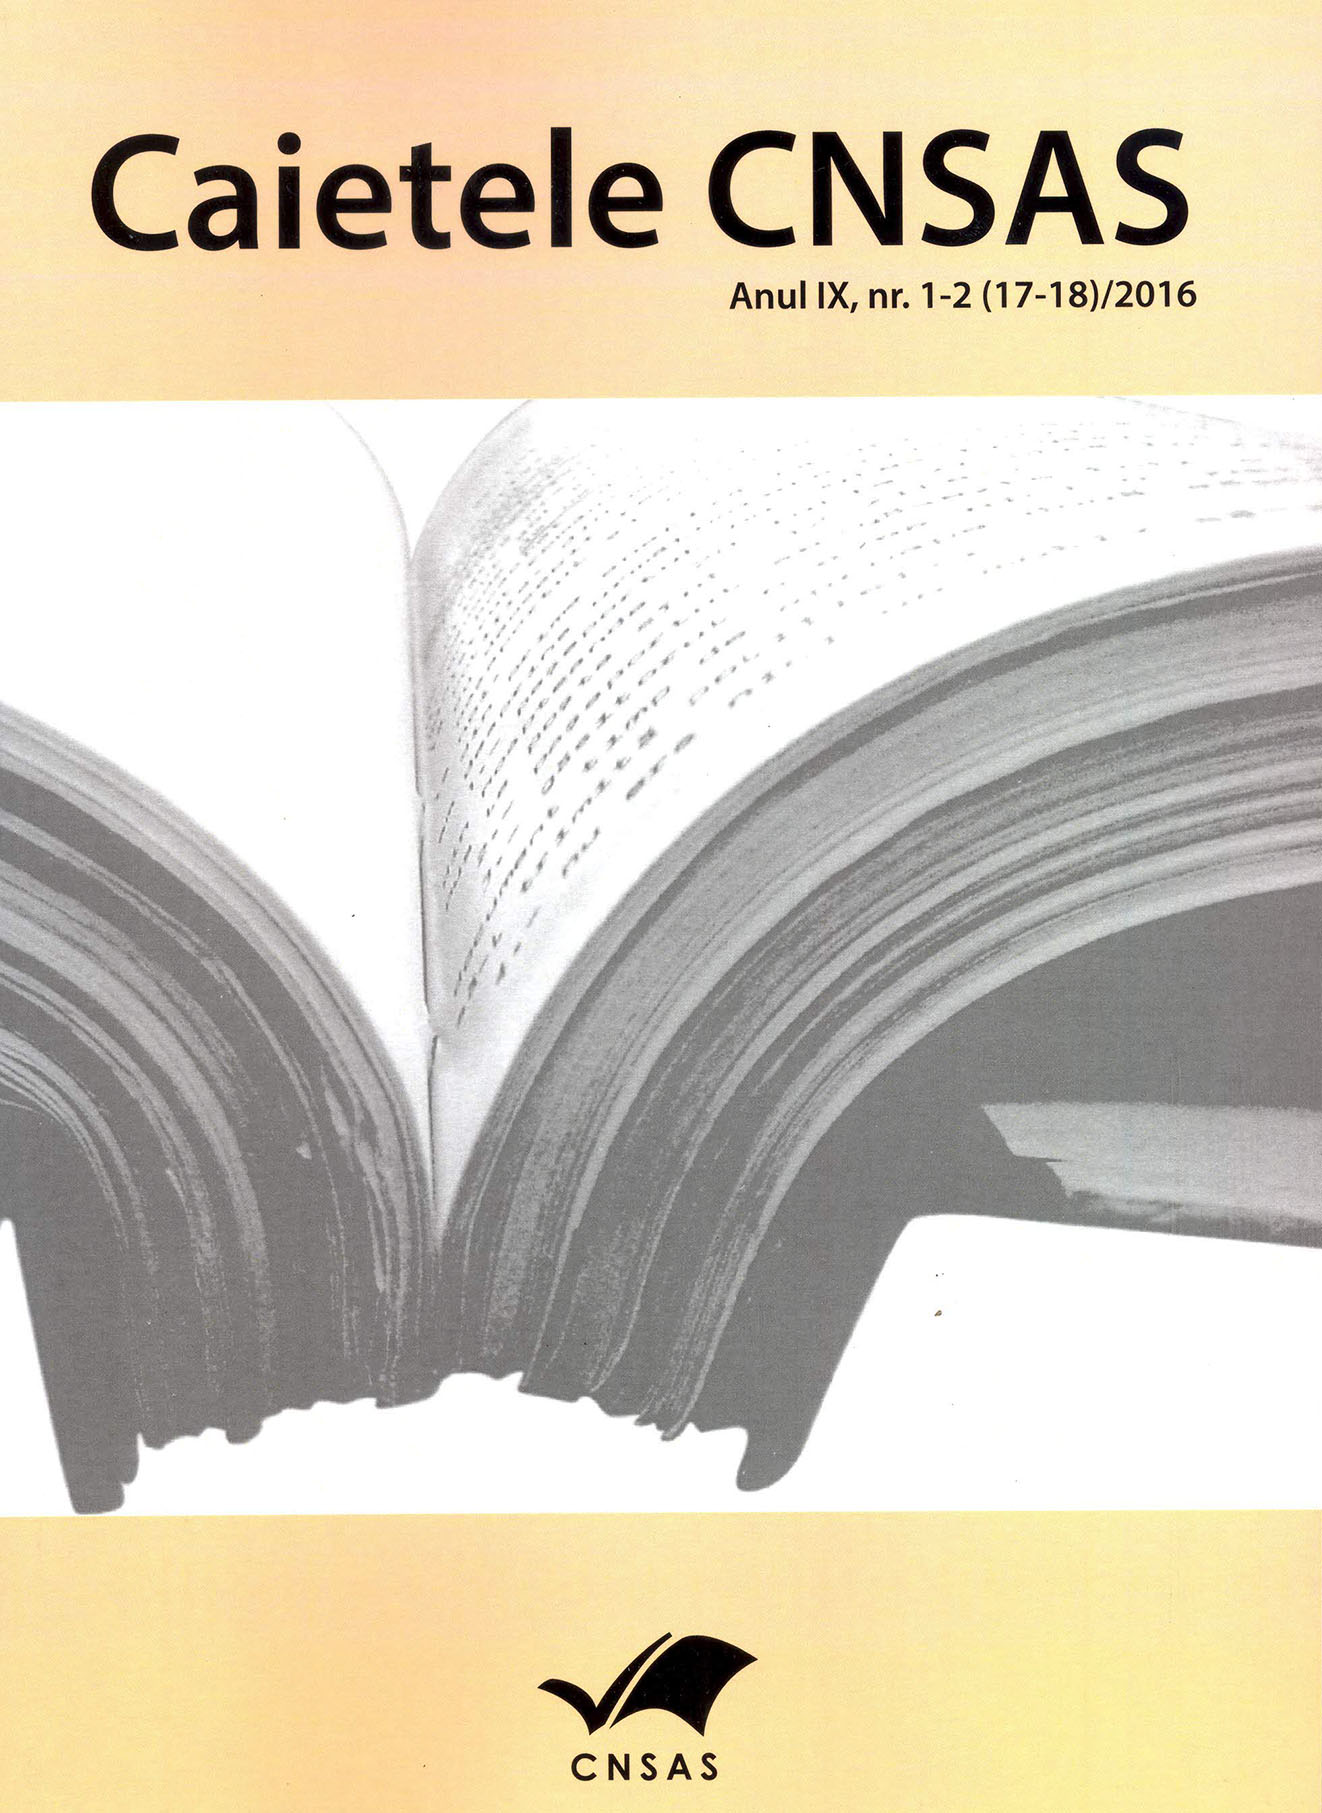 The front cover of CNSAS Notebooks